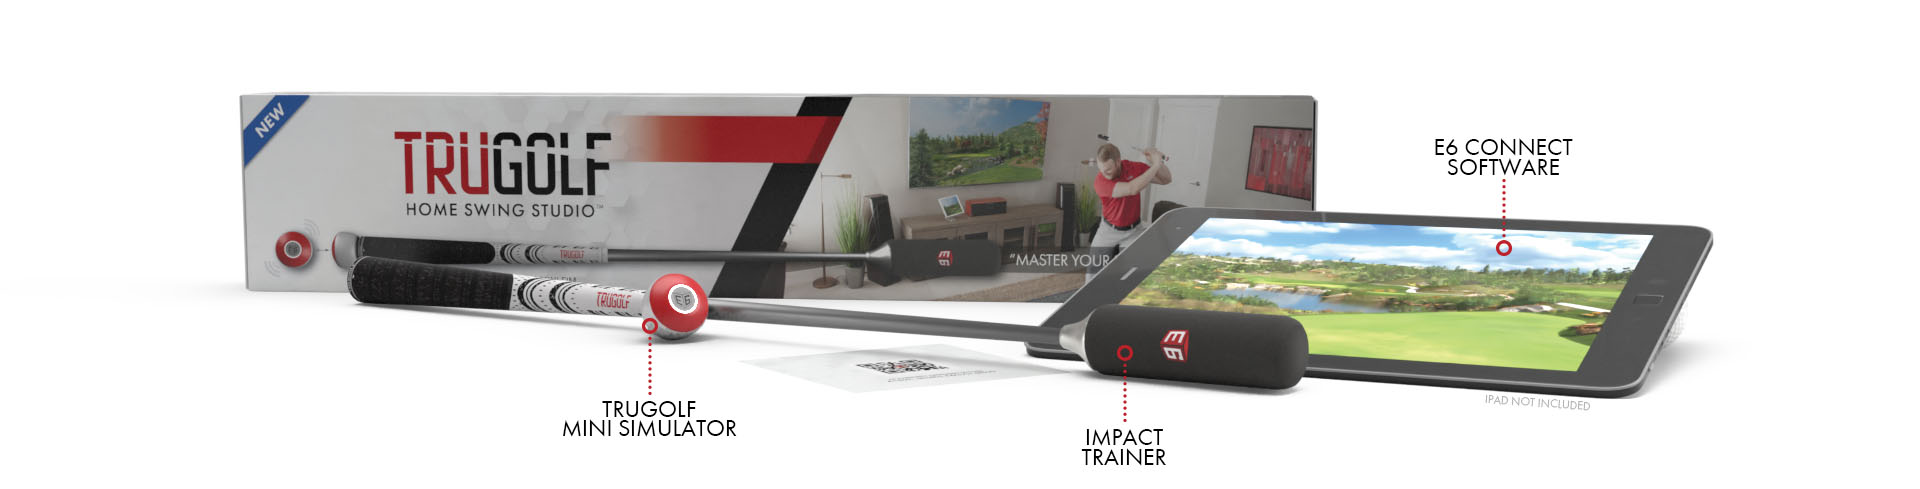 Home Swing Studio - Golf Swing Trainer & Training Aid from TruGolf